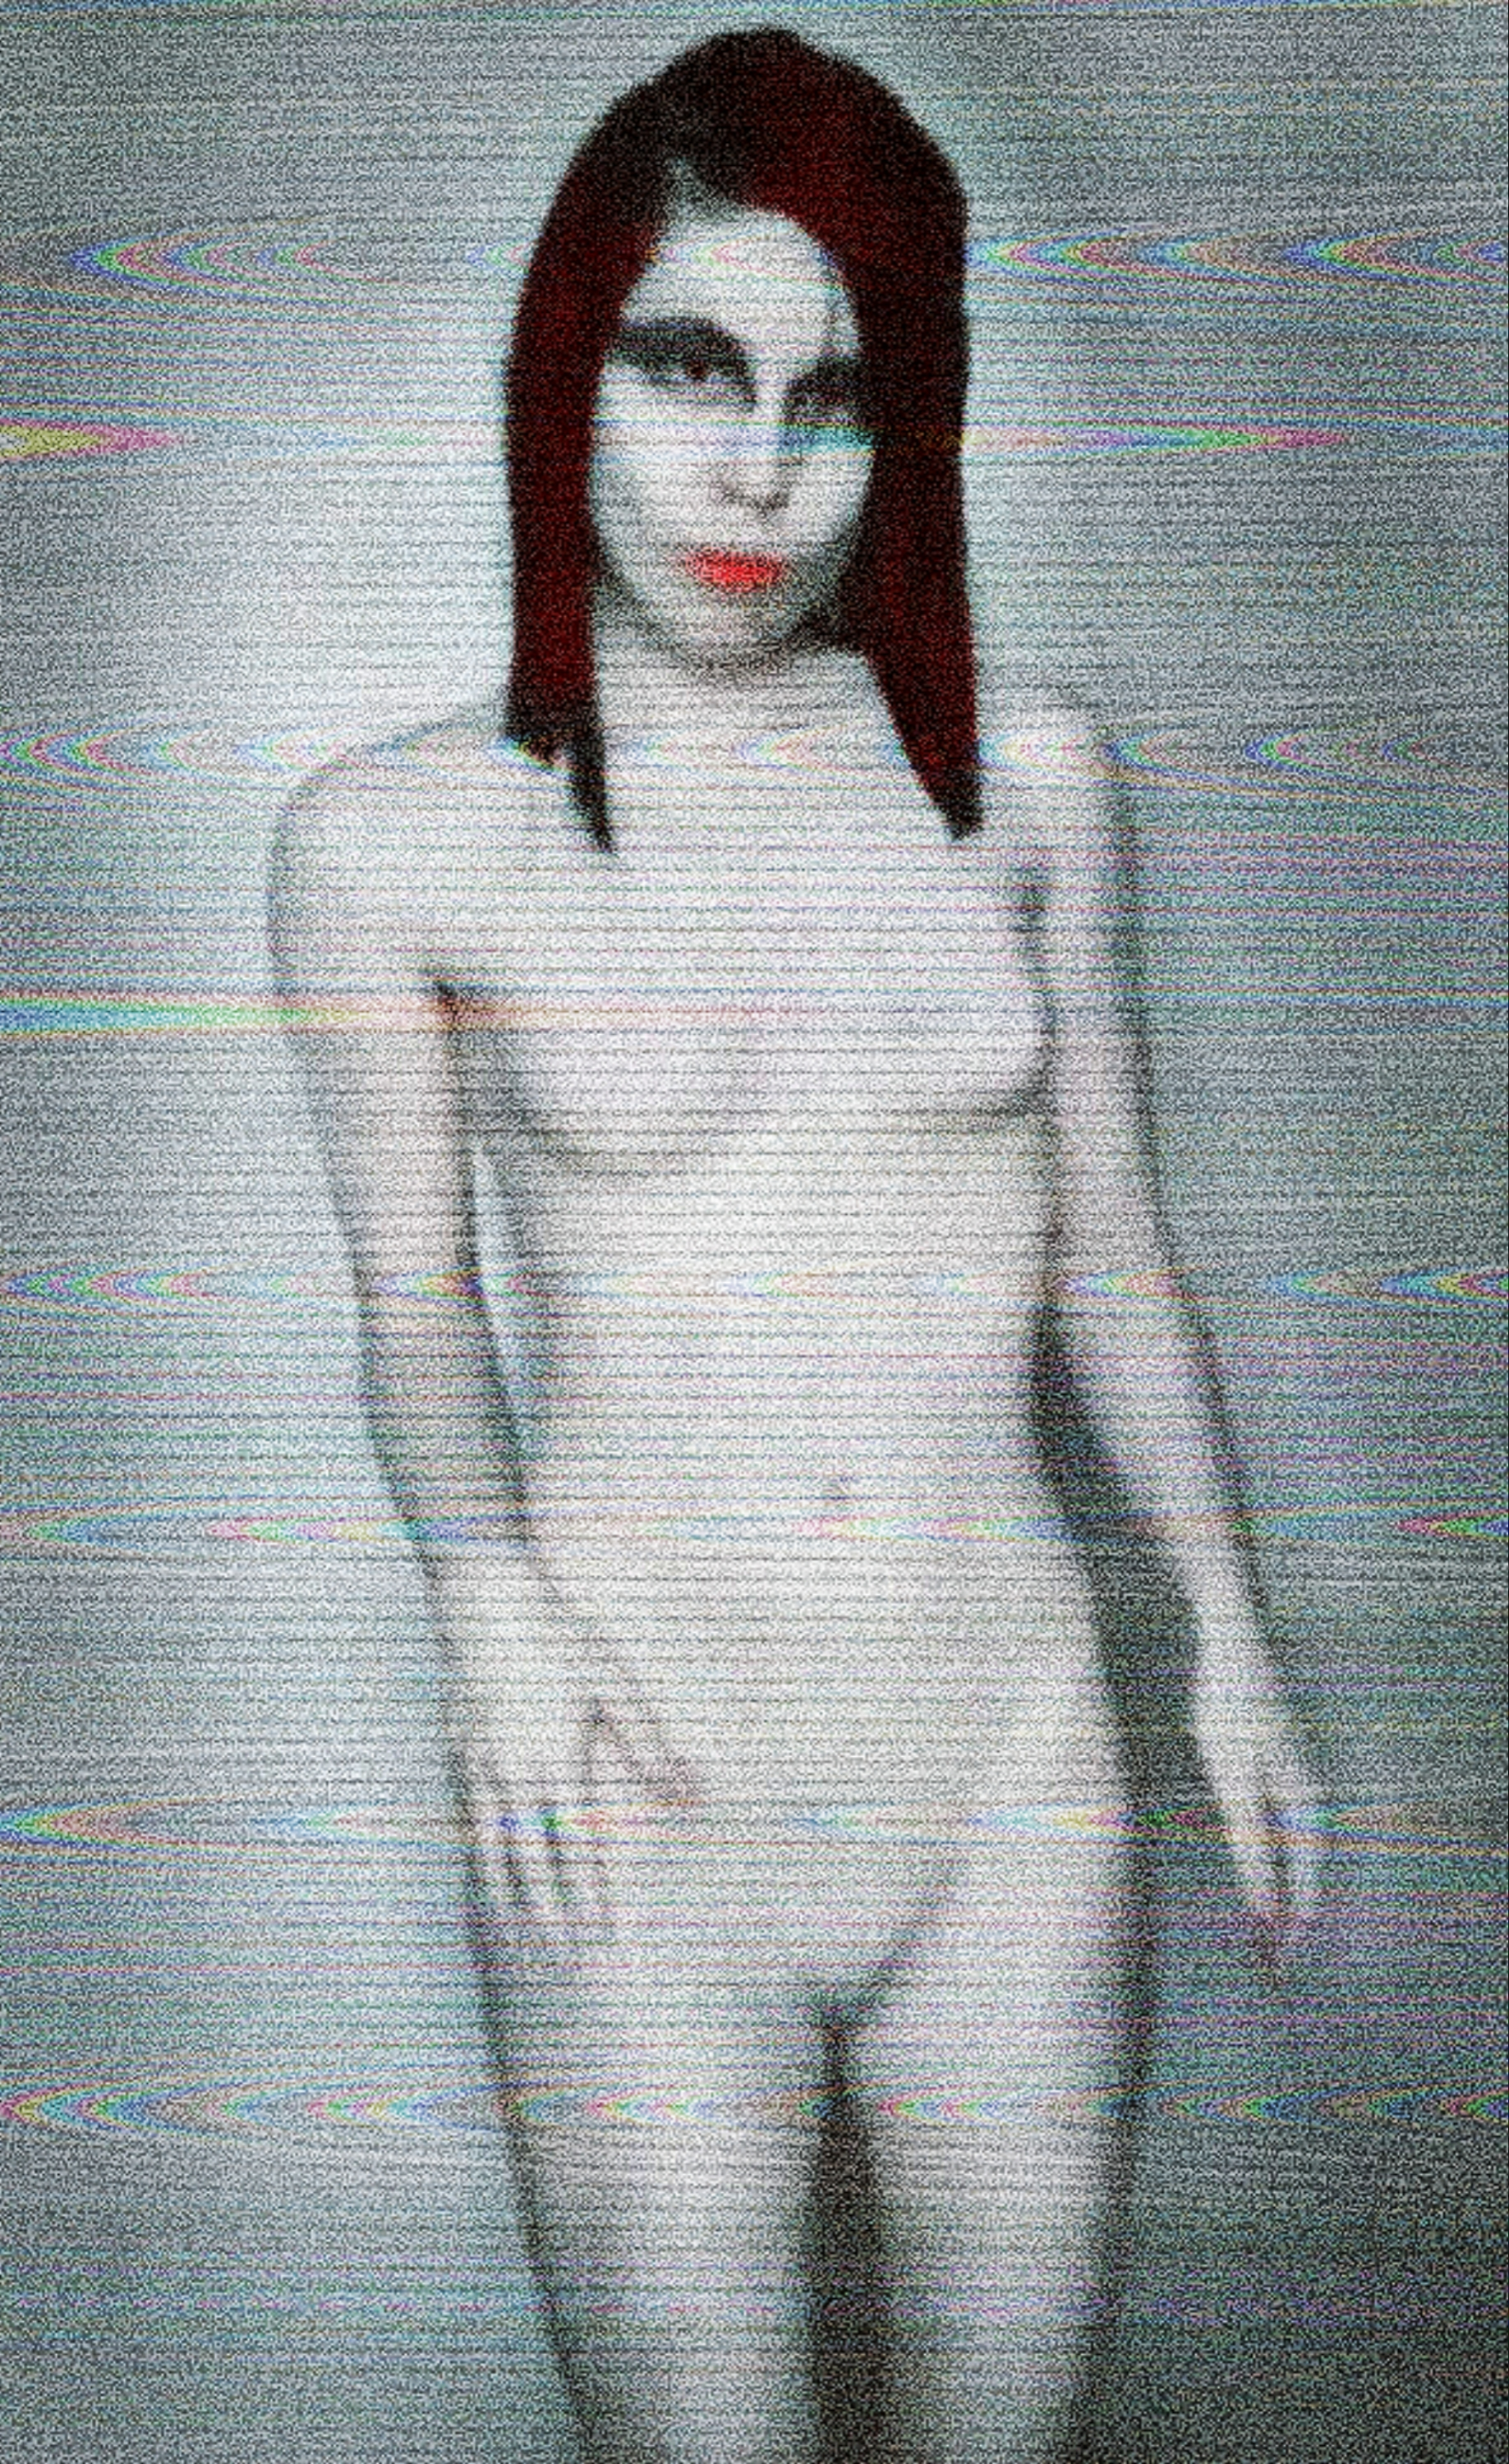 Marilyn Manson The Dope Show Cosplay 3